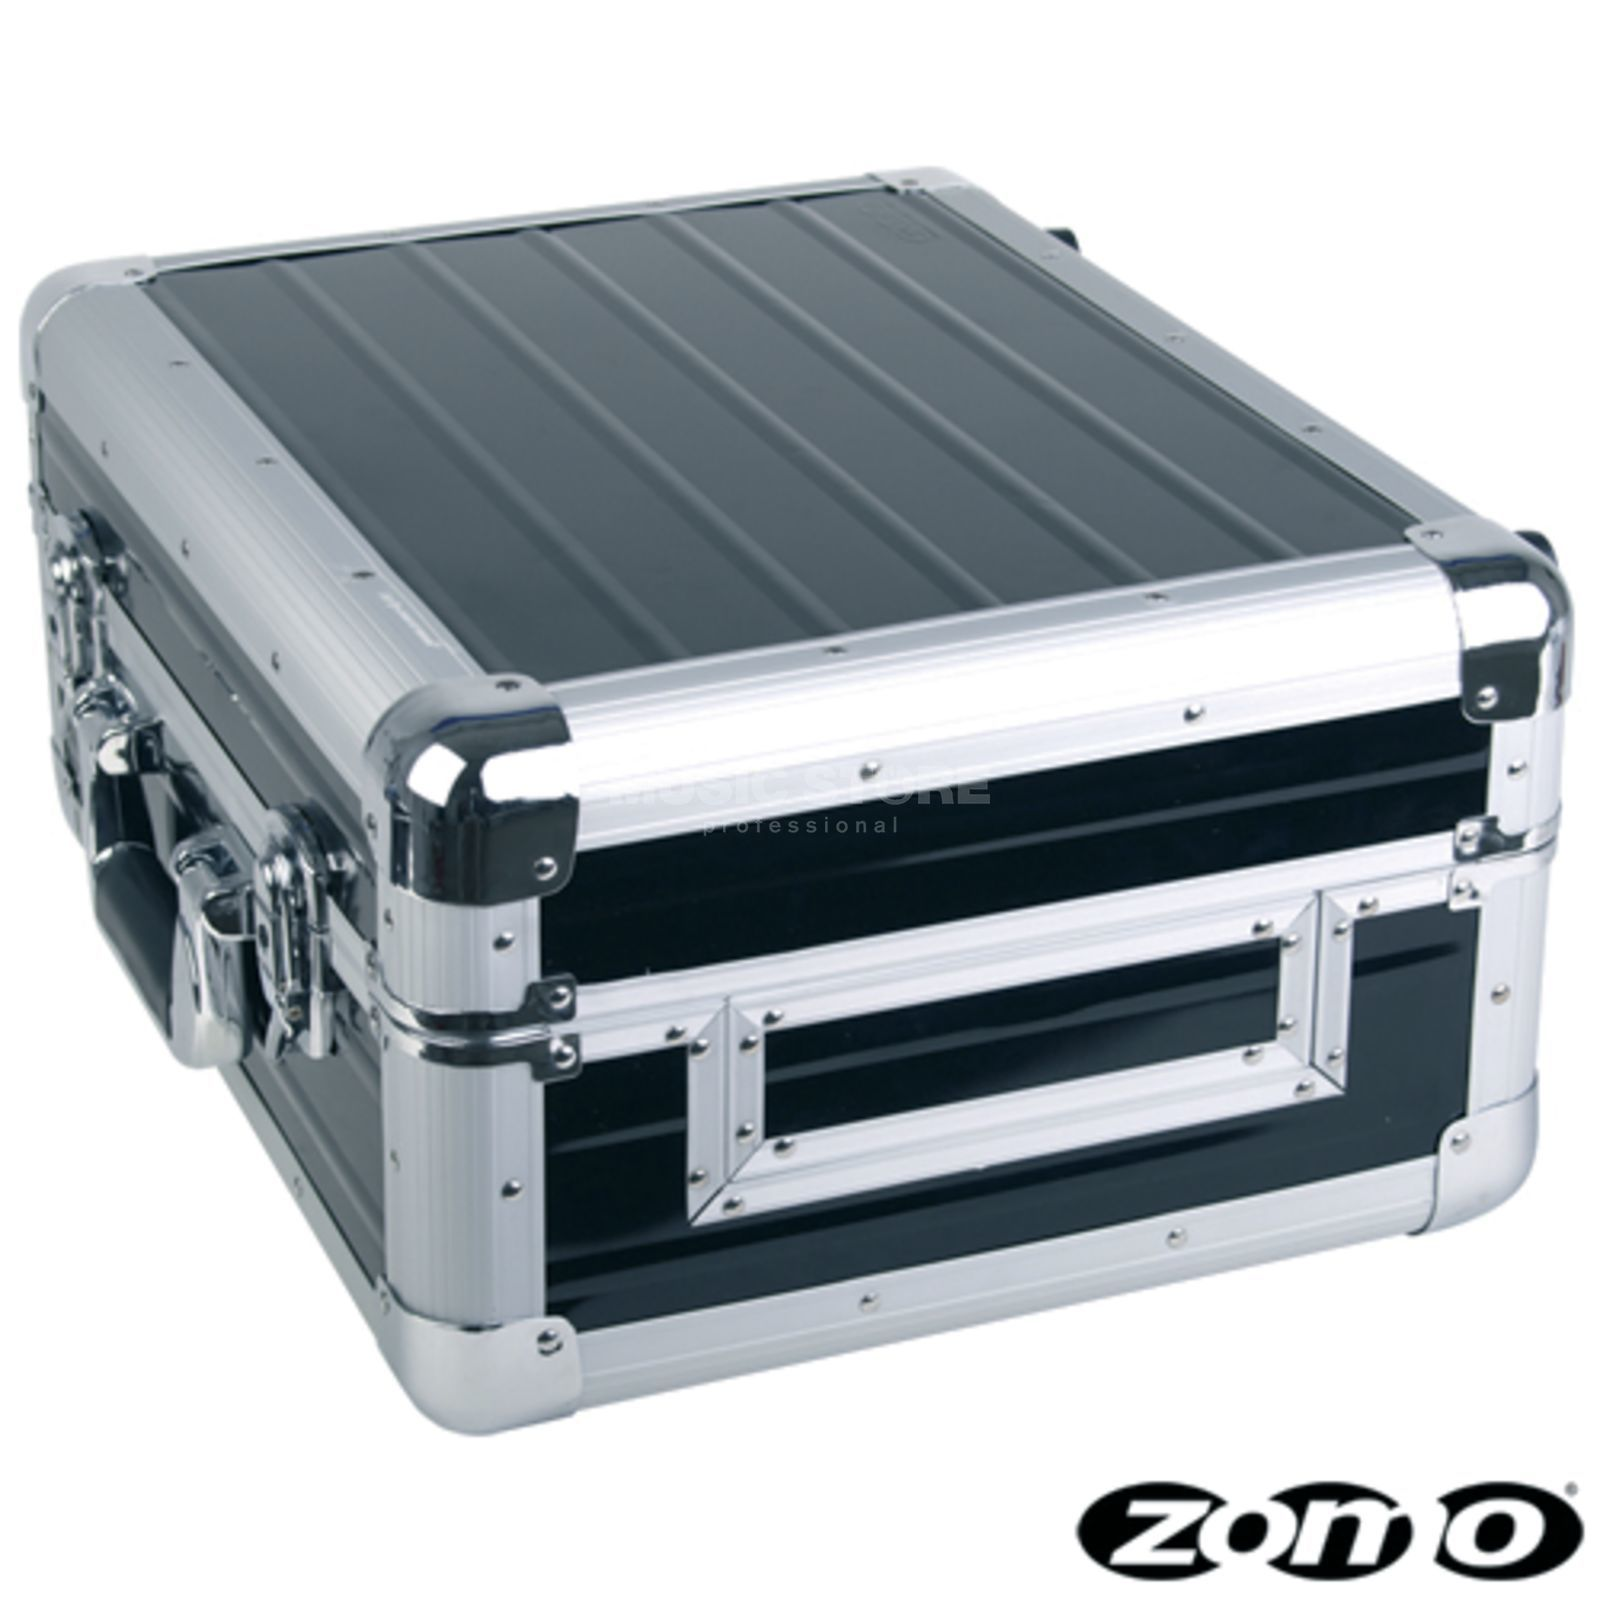 "Zomo Universal Case CDJ-1 XT black for CD-Player / 12"" Mixer Product Image"